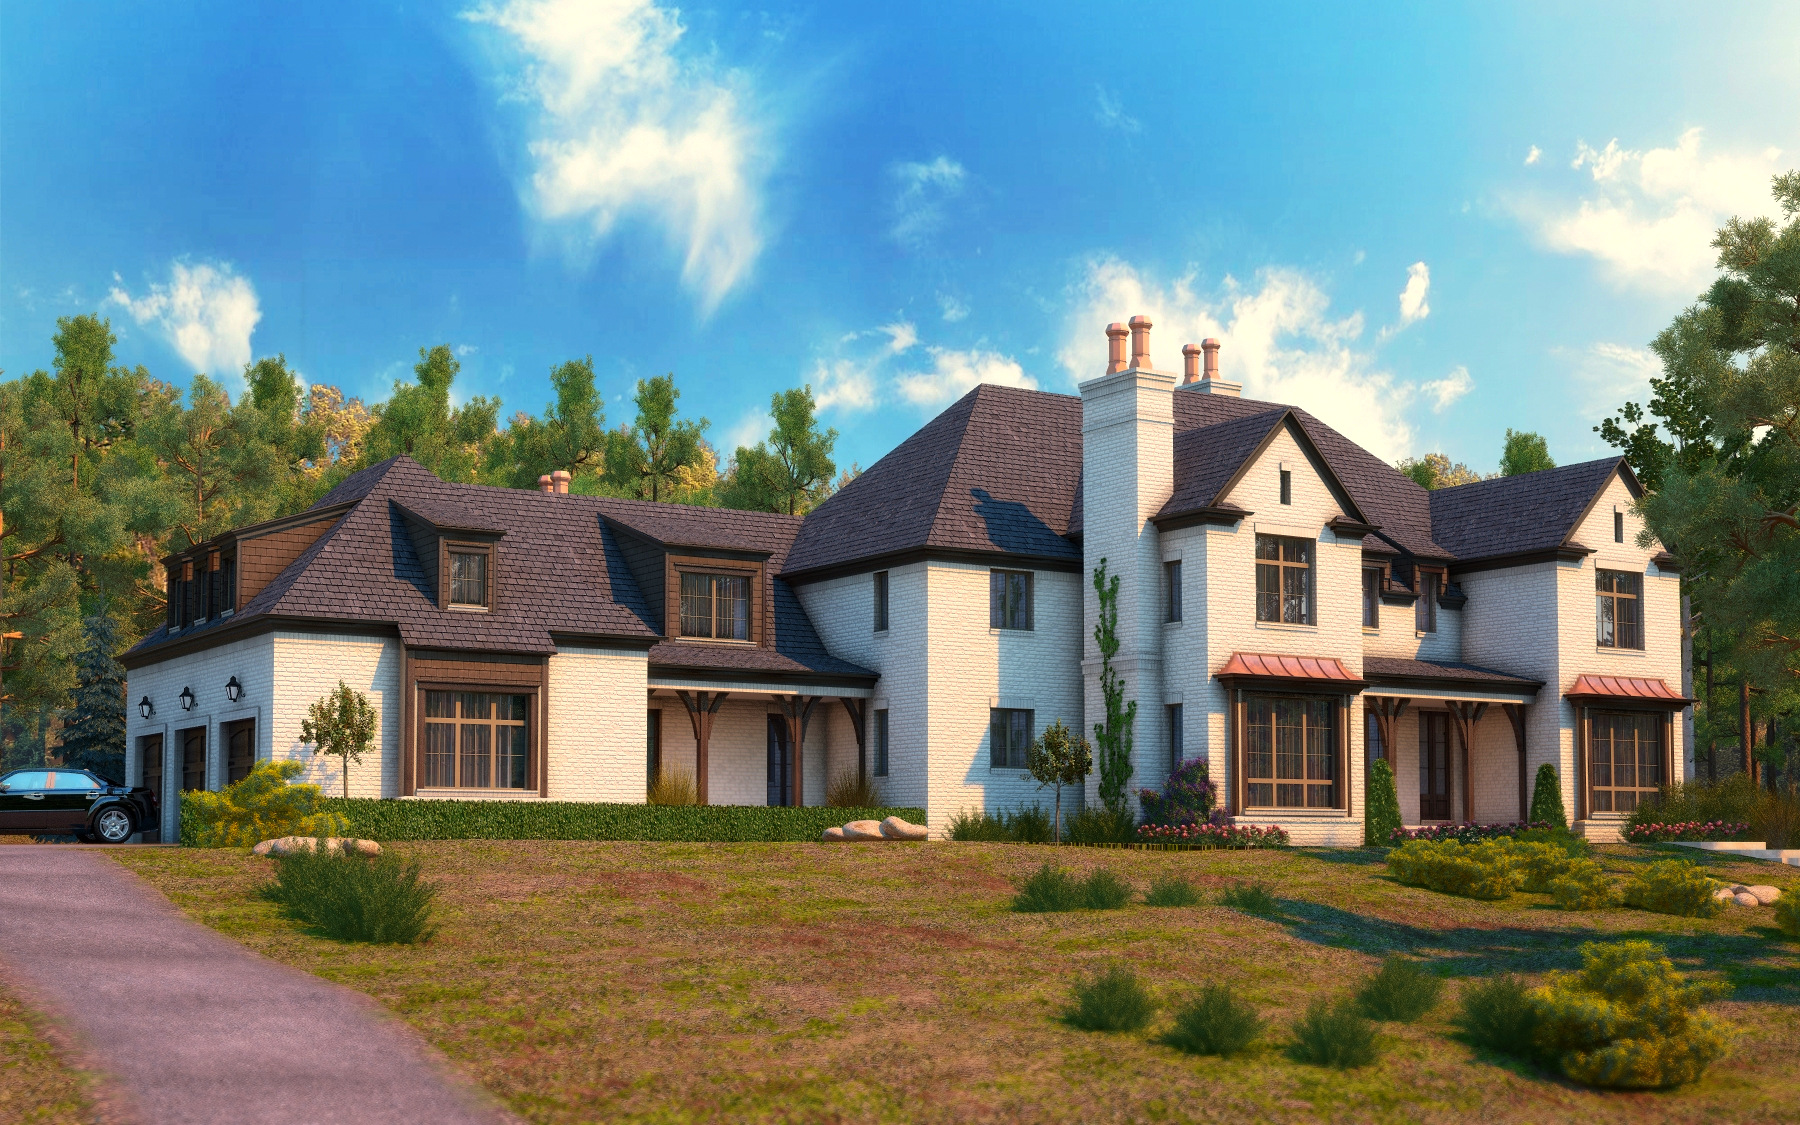 Large Home Exterior Front by zodevdesign